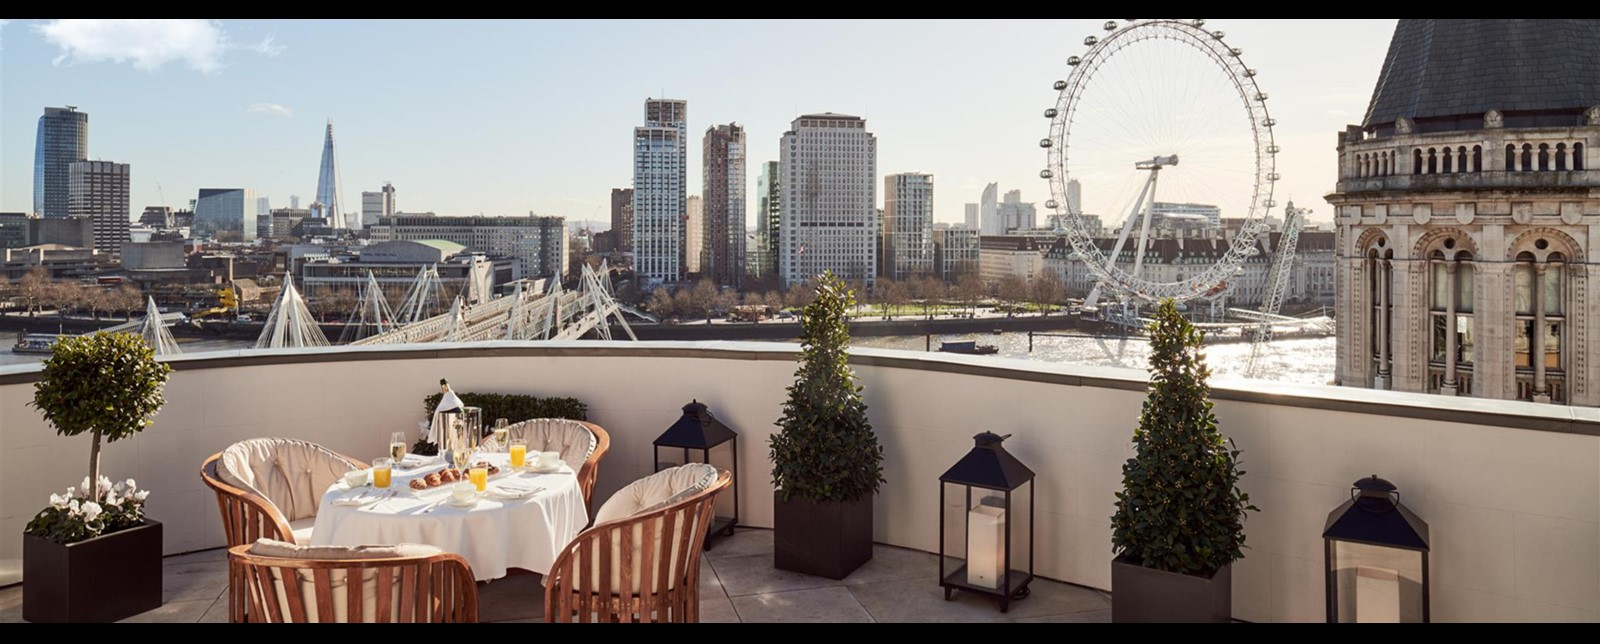 corinthia london royal penthouse terrace 2